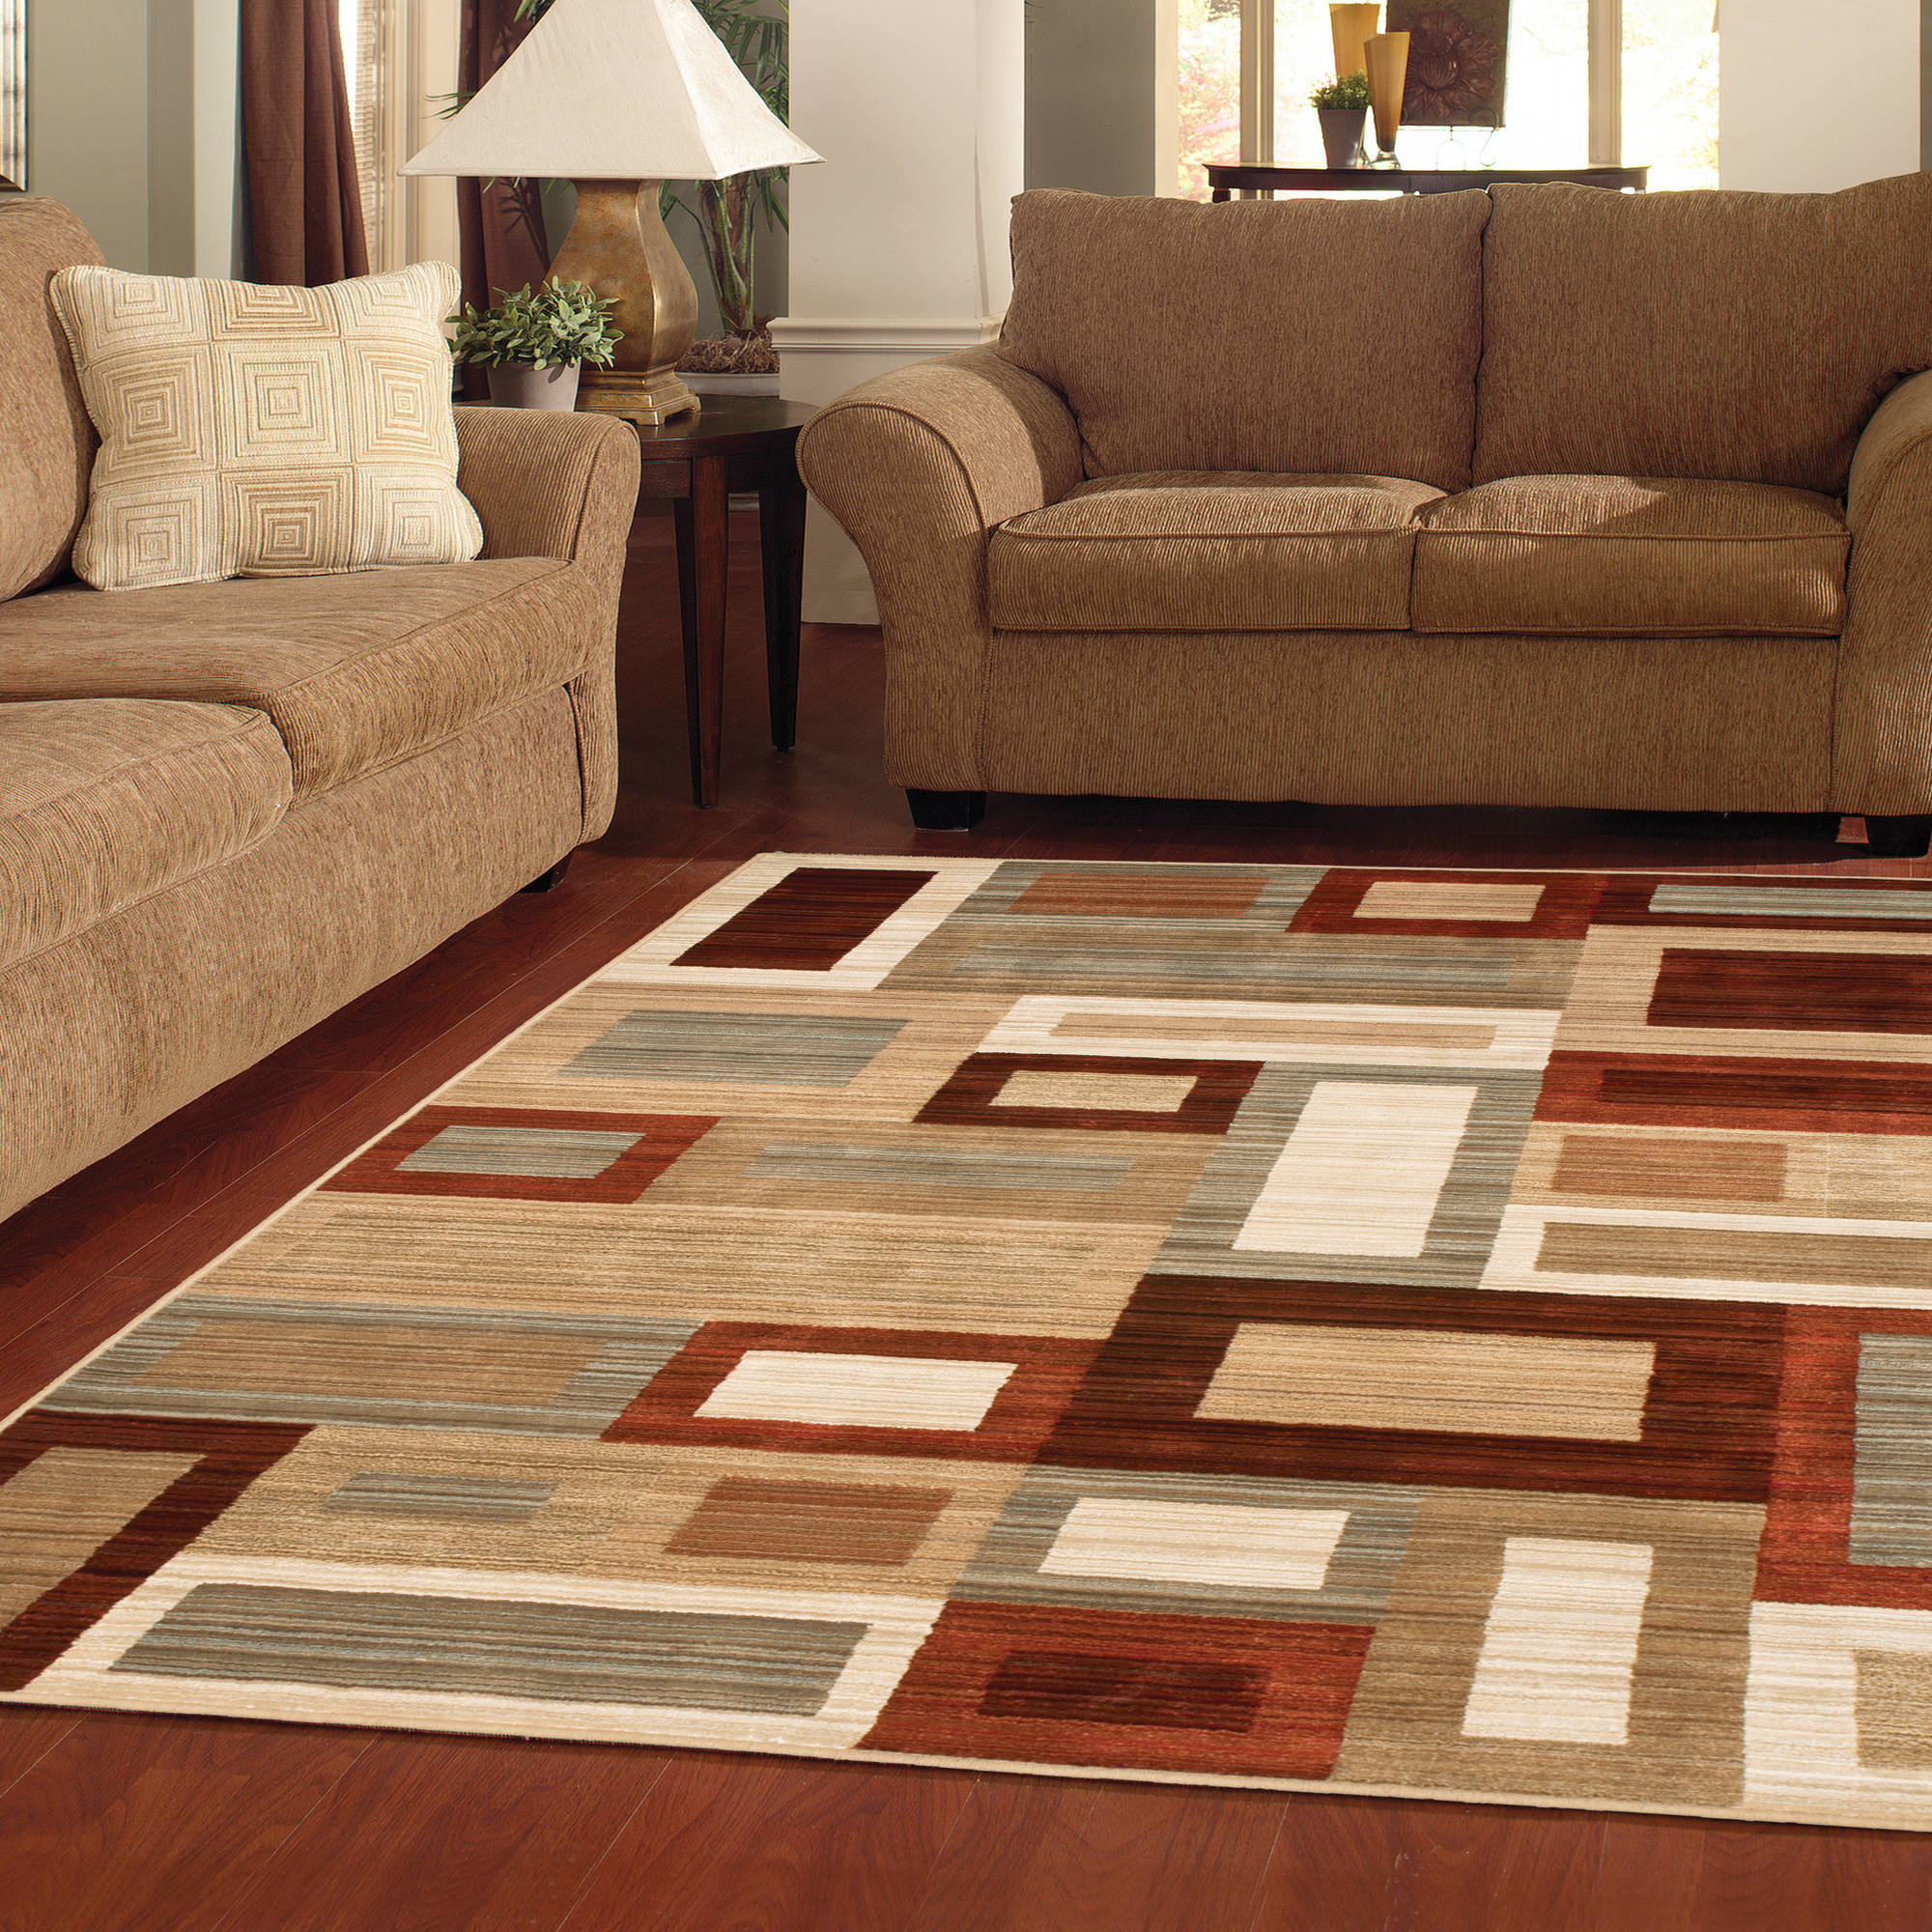 Good Better Homes And Gardens Franklin Squares Area Rug Or Runner